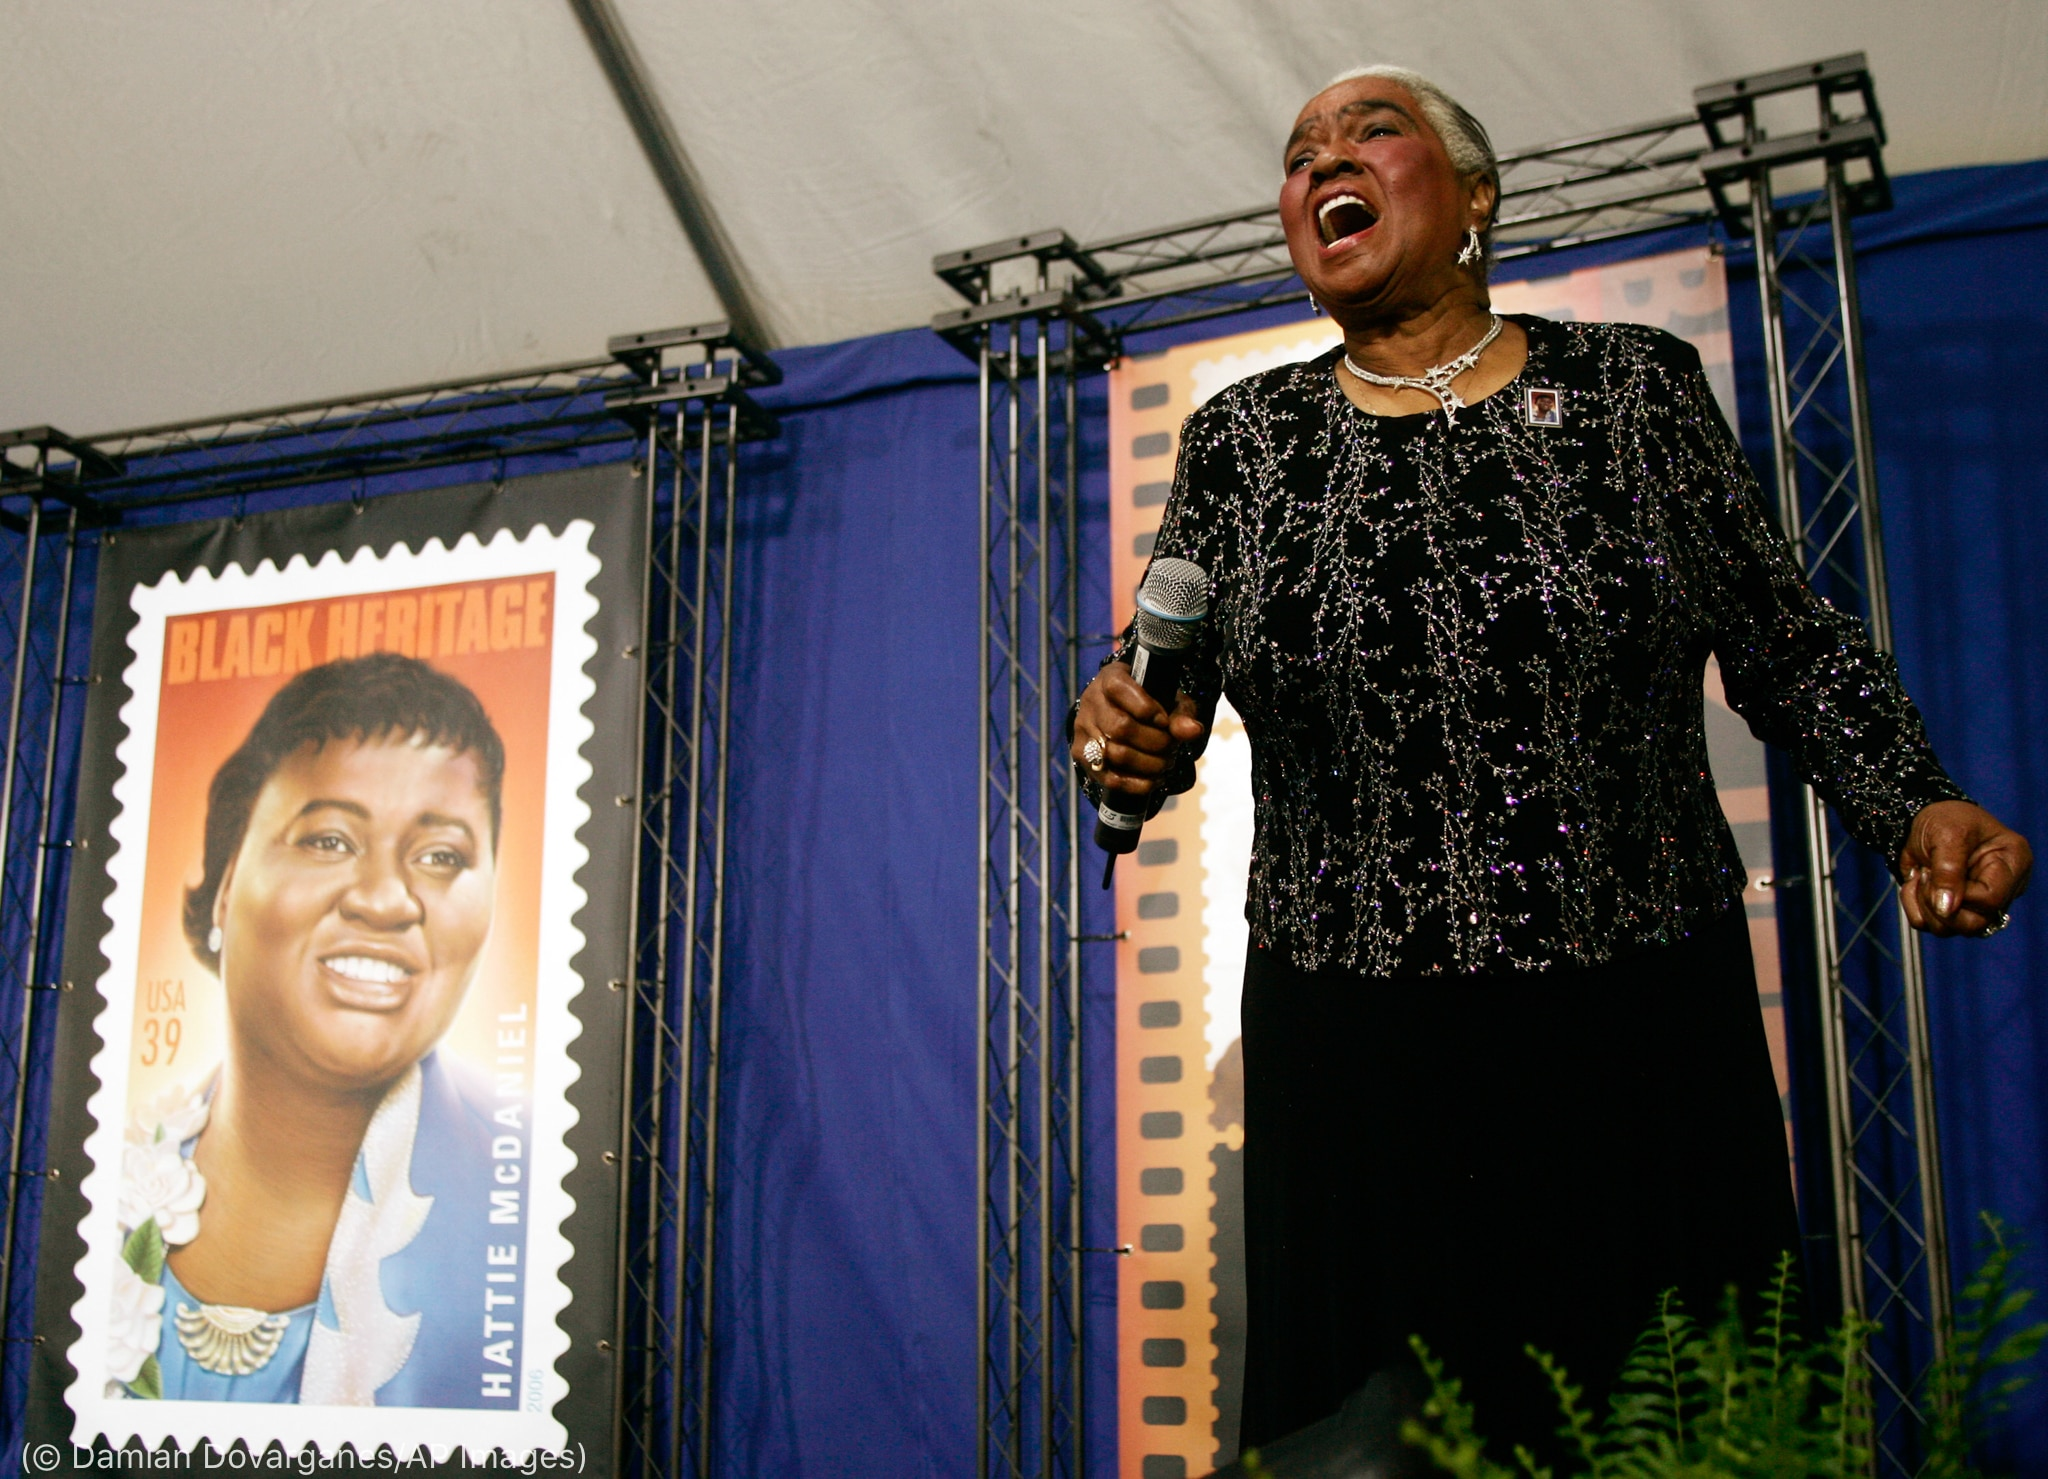 Linda Hopkins singing next to image of stamp (© Damian Dovarganes/AP Images)